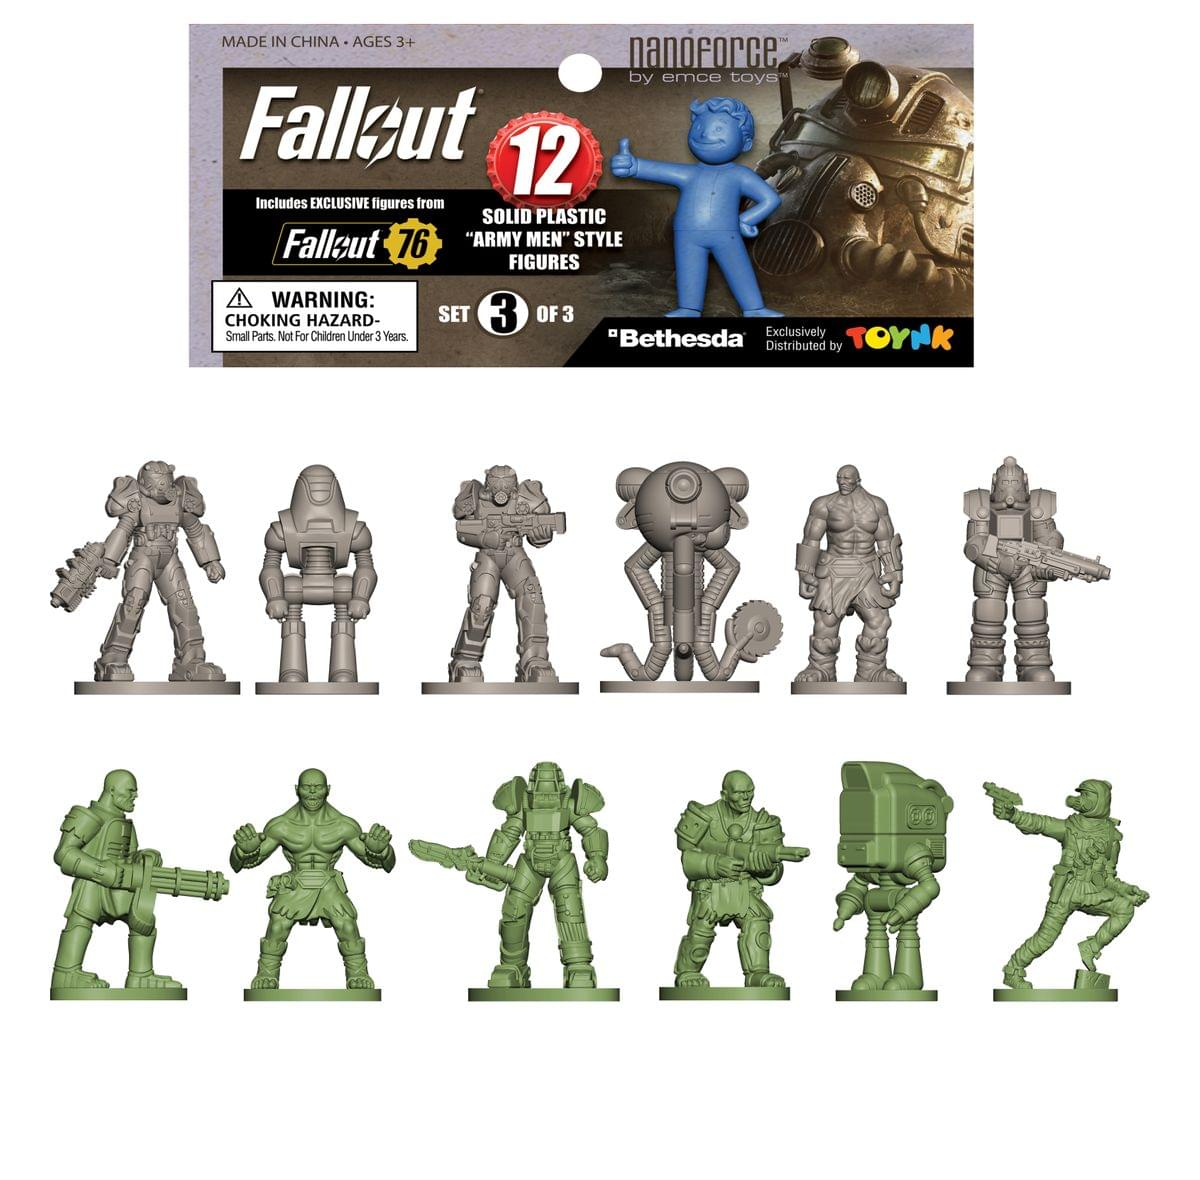 Fallout Nanoforce Series 1 Army Builder Figure Collection - Bagged